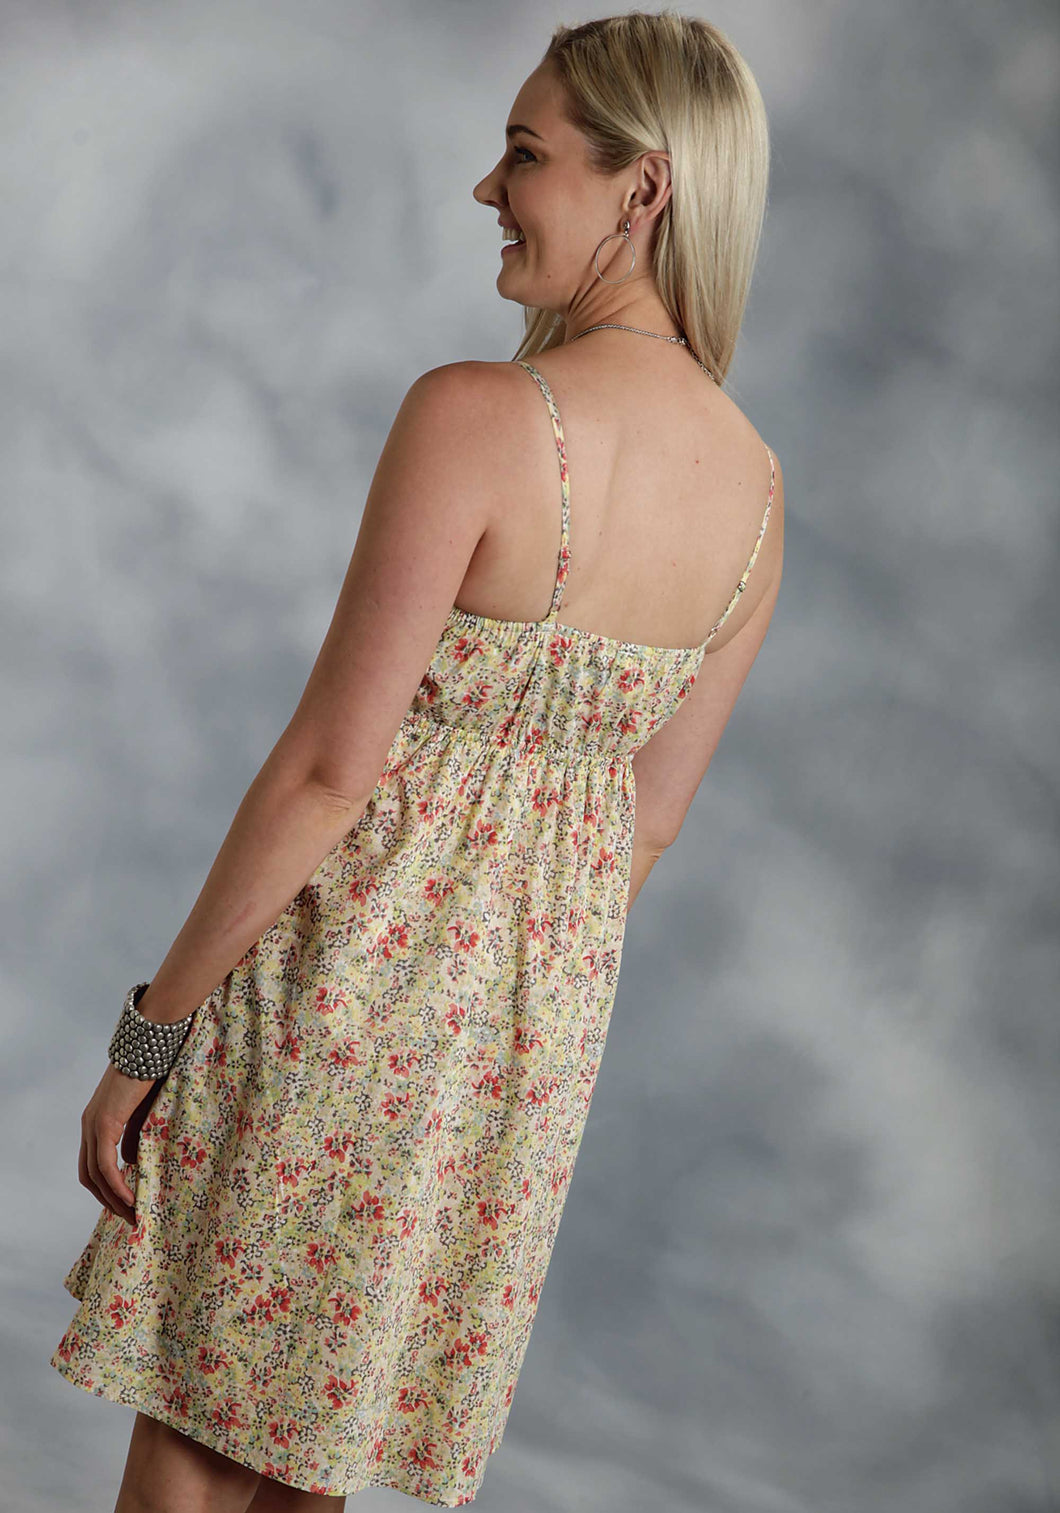 Five Star- Wild Flowers 5star Ladies Sleeveless Dress 9756 Coral Ditsy Floral Prt Sun Dress